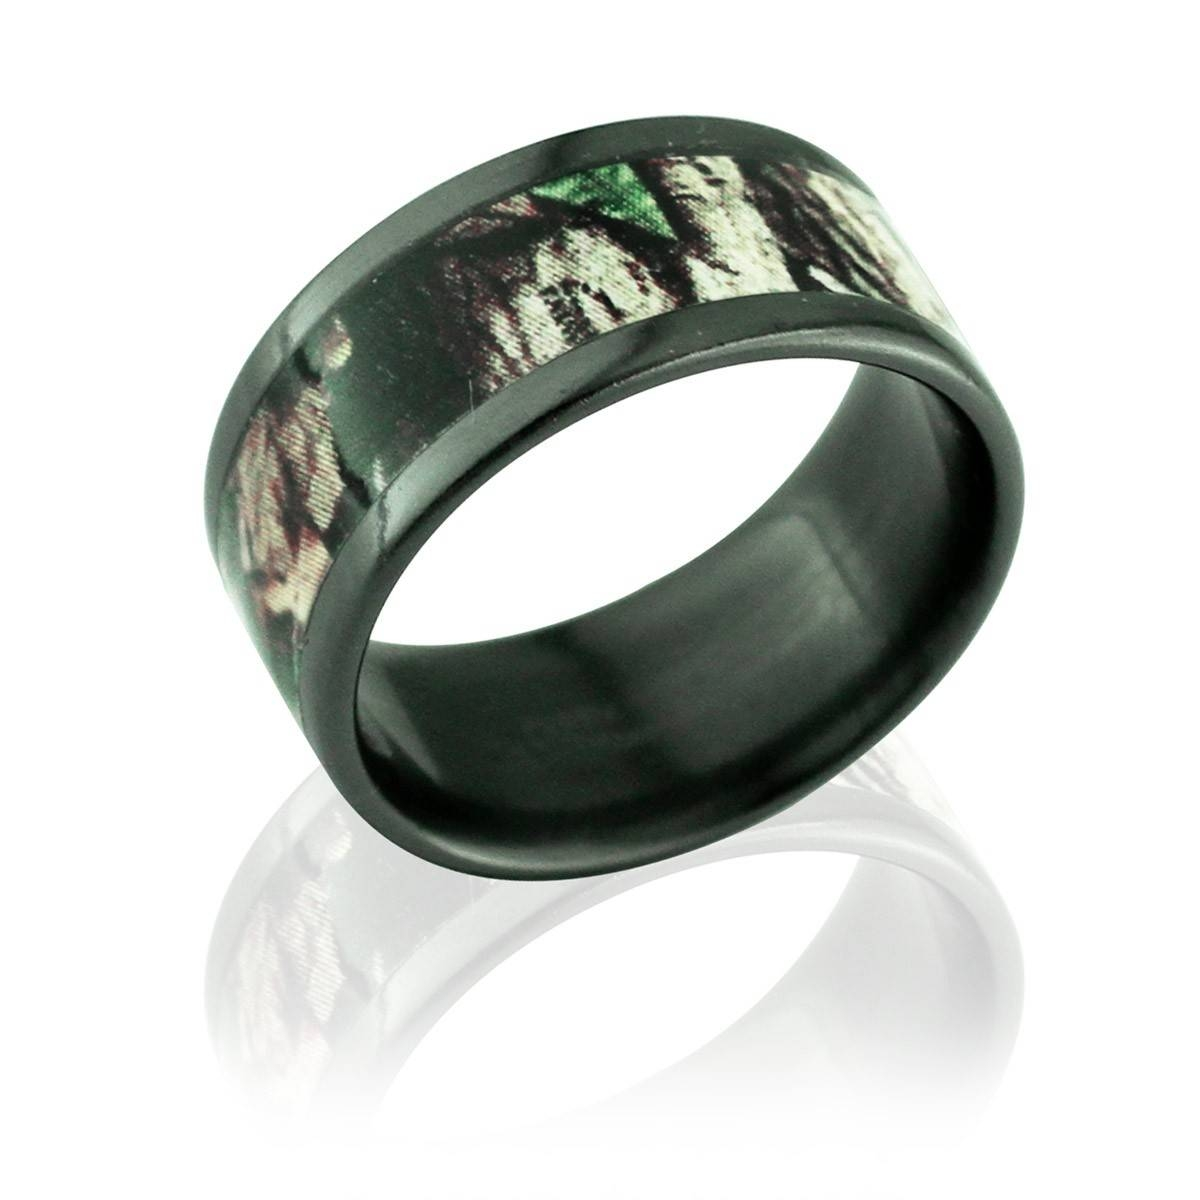 91 camo wedding band for him camo wedding ring set